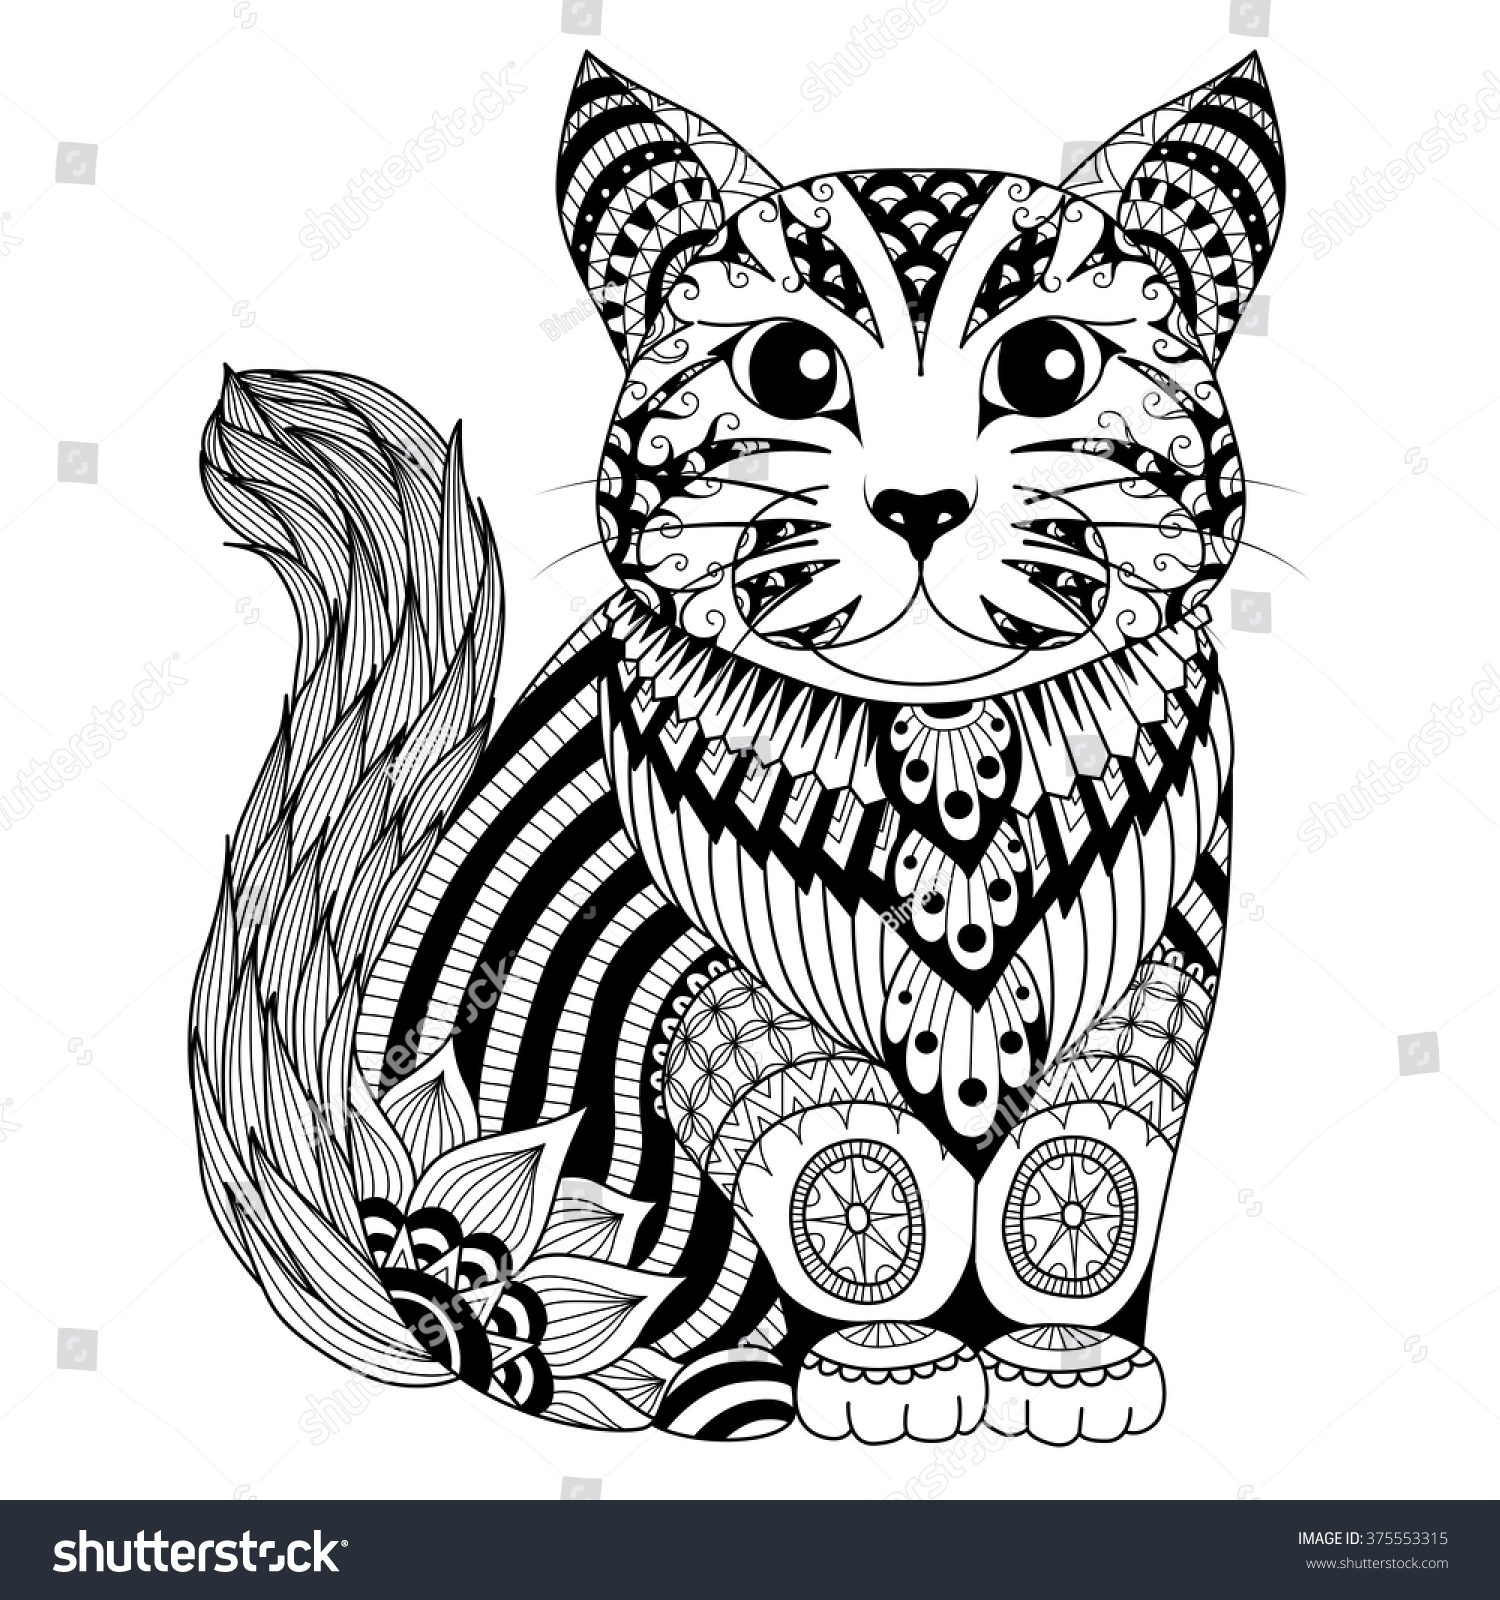 Zen cat coloring page - Drawing Zentangle Cat For Coloring Page Shirt Design Effect Logo Tattoo And Decoration